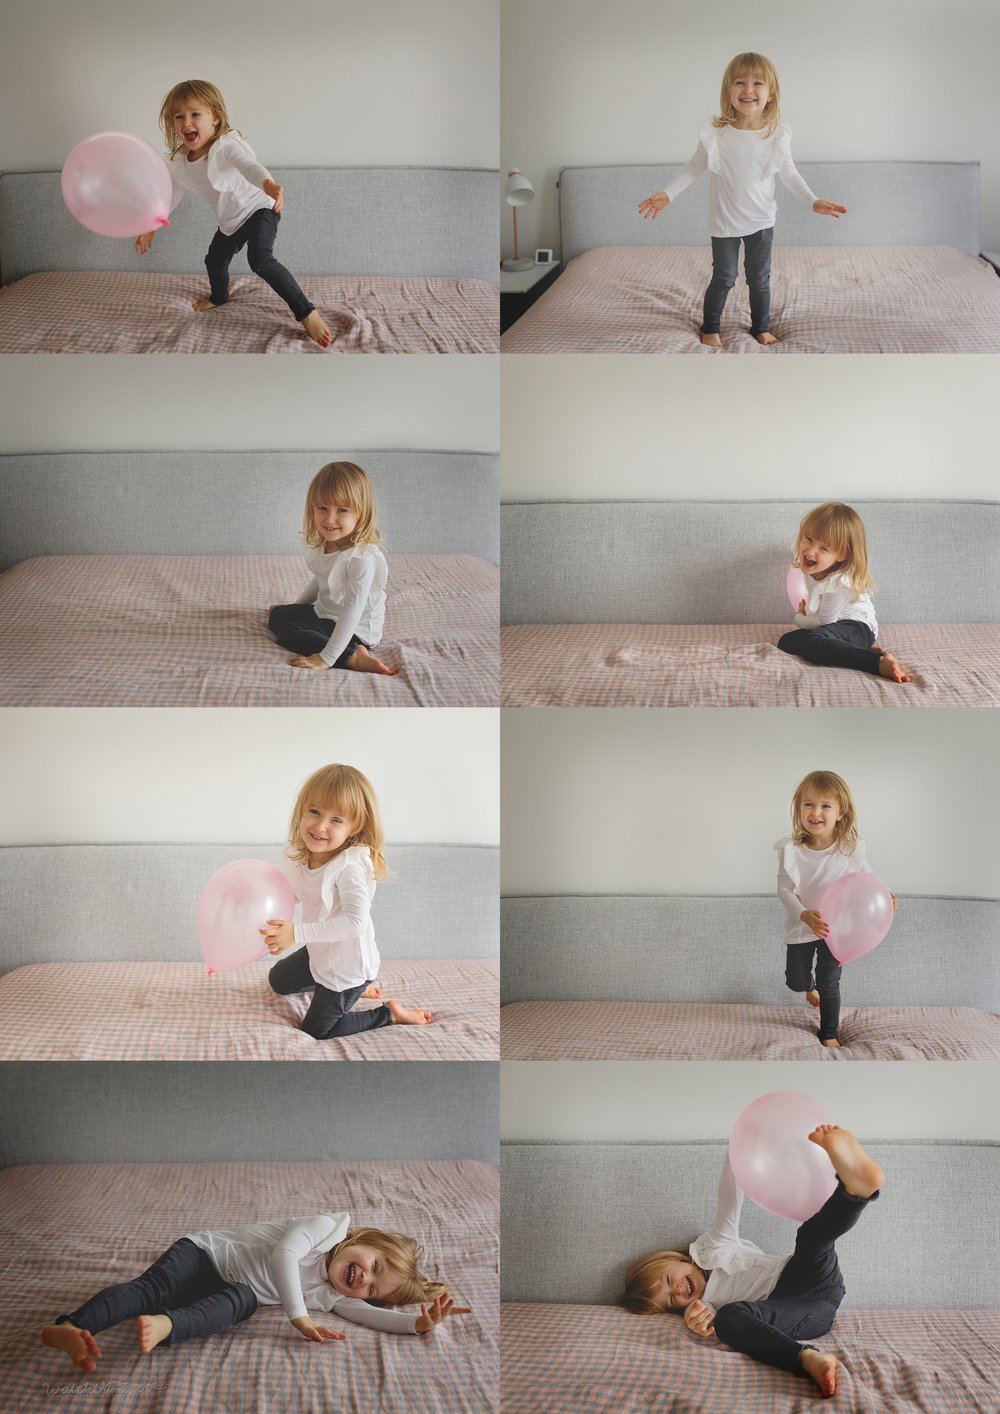 Little girl playing with her balloon!